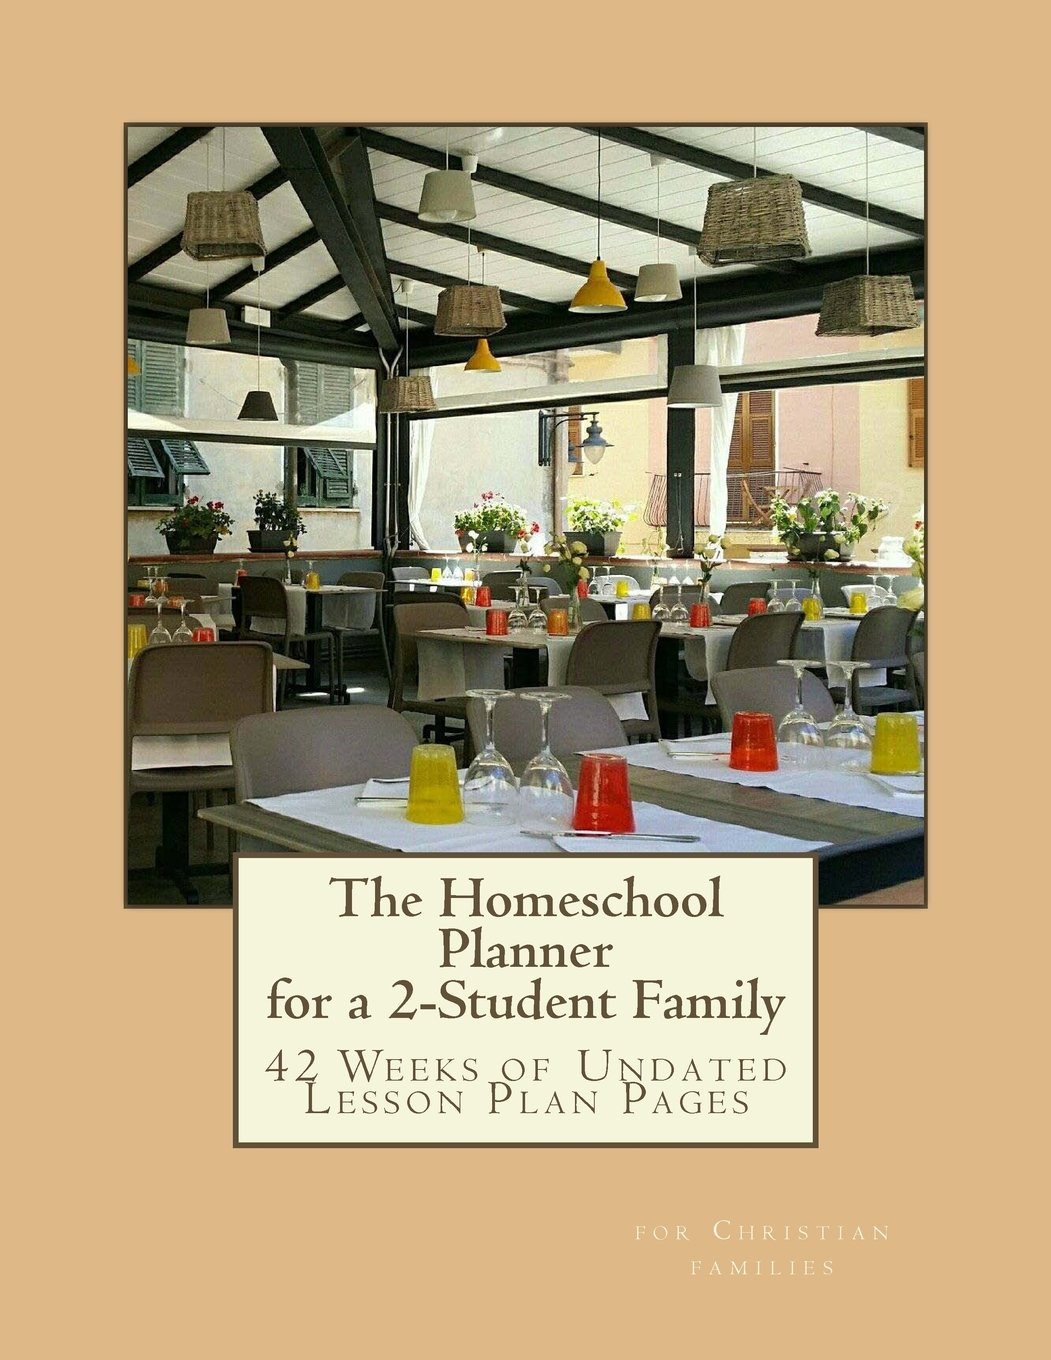 Download The Homeschool Planner for a 2-Student Family: 42 Weeks of Lesson Plan Pages pdf